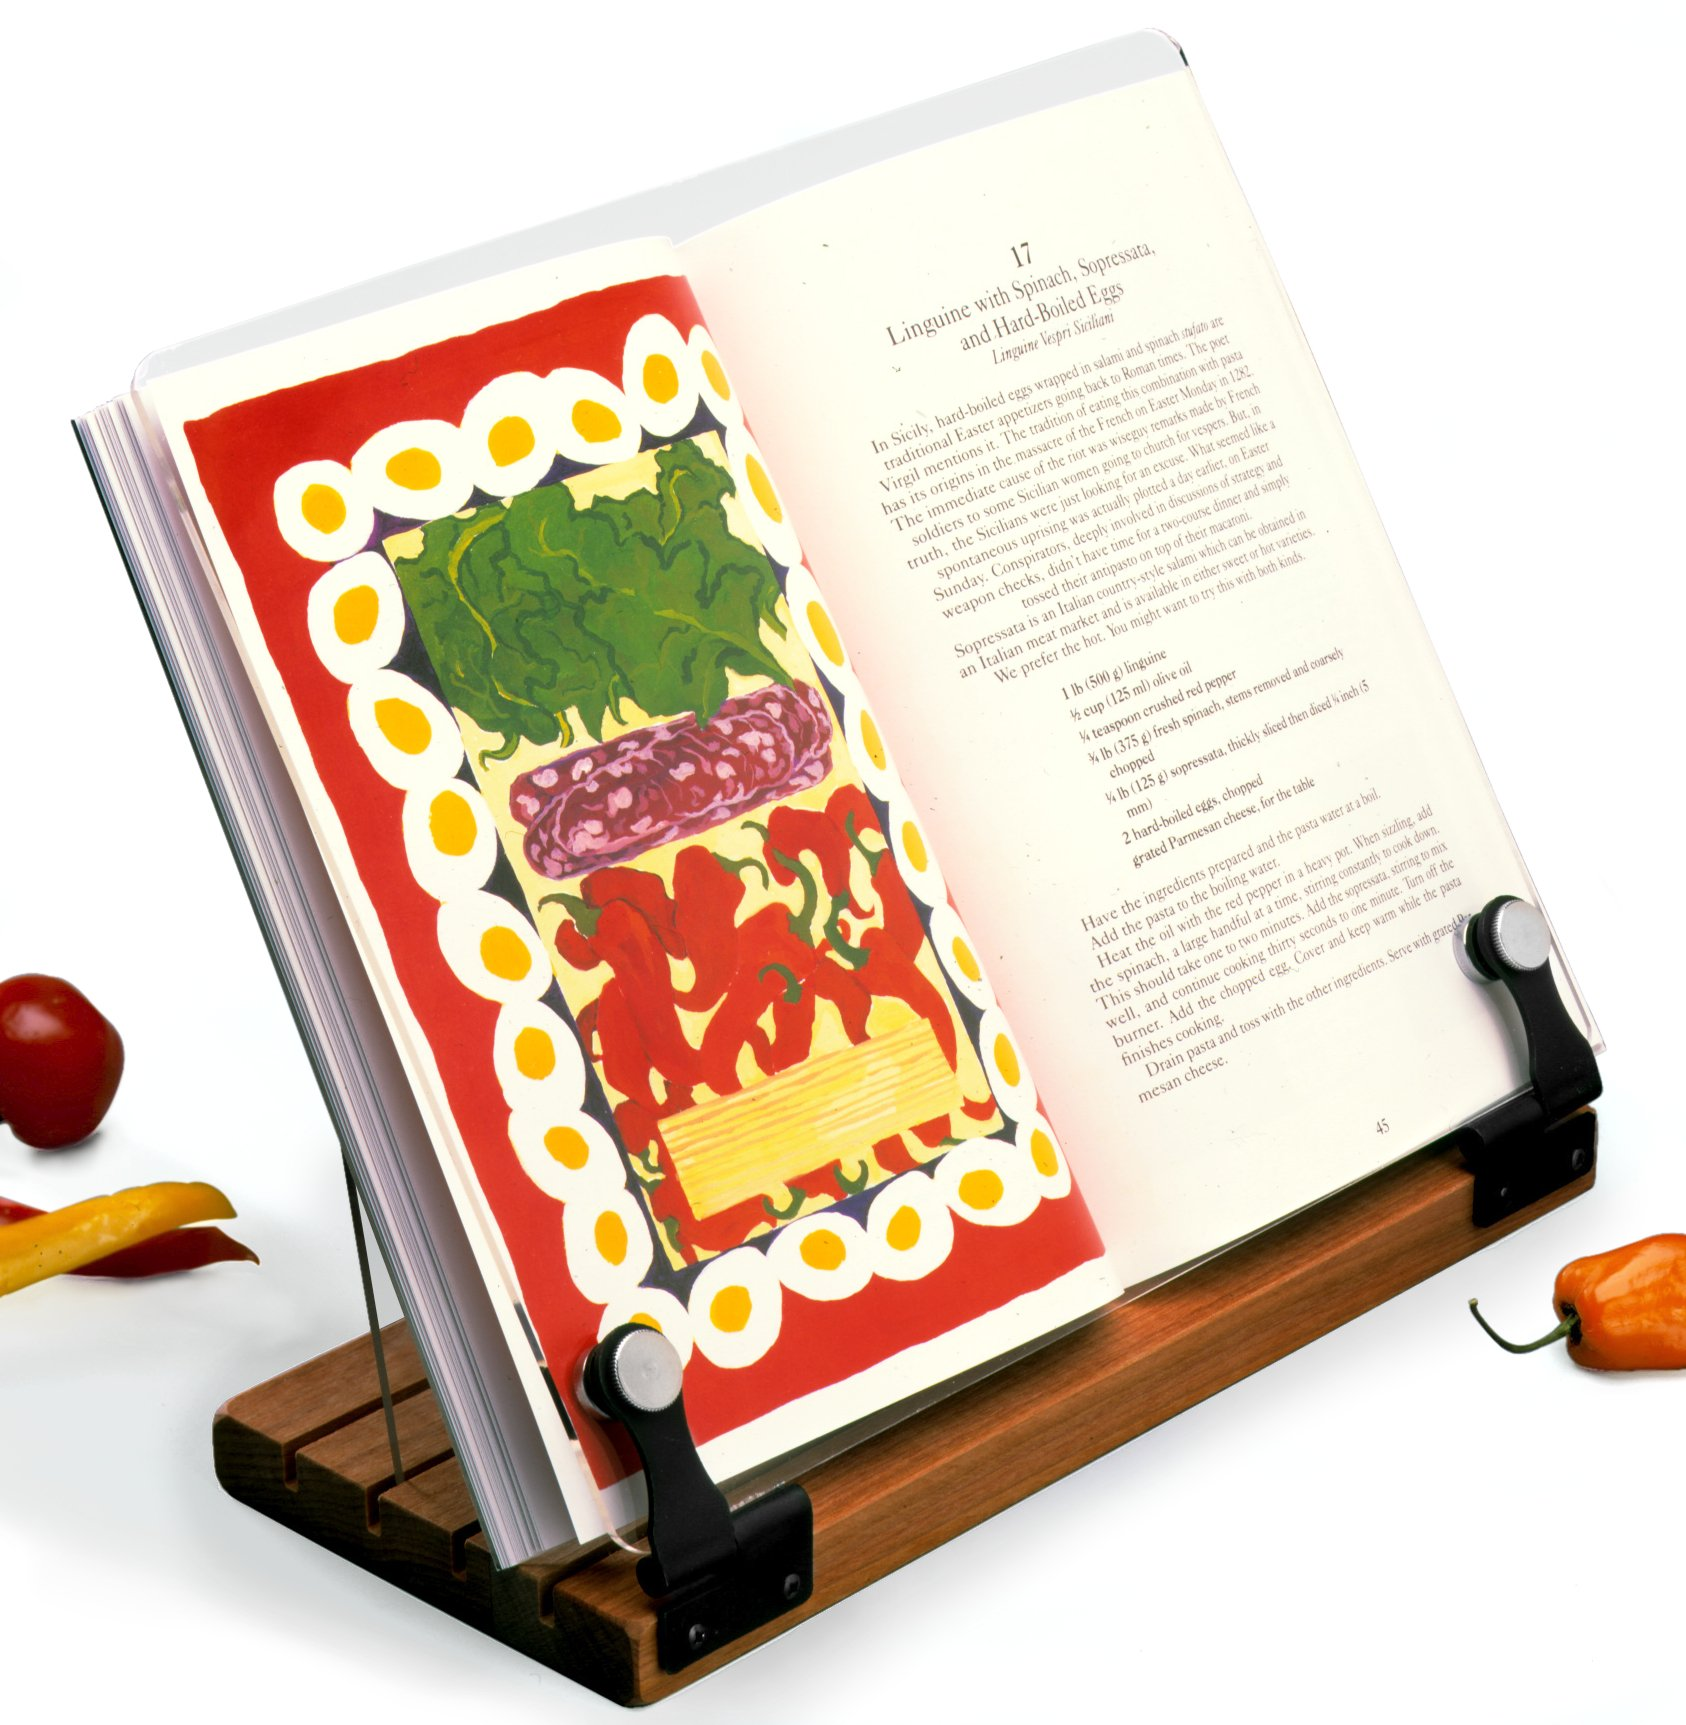 Deluxe Original Cookbook Holder - Acrylic Shield With Wooden Base and Black Hinges - Made in the USA by Clear Solutions